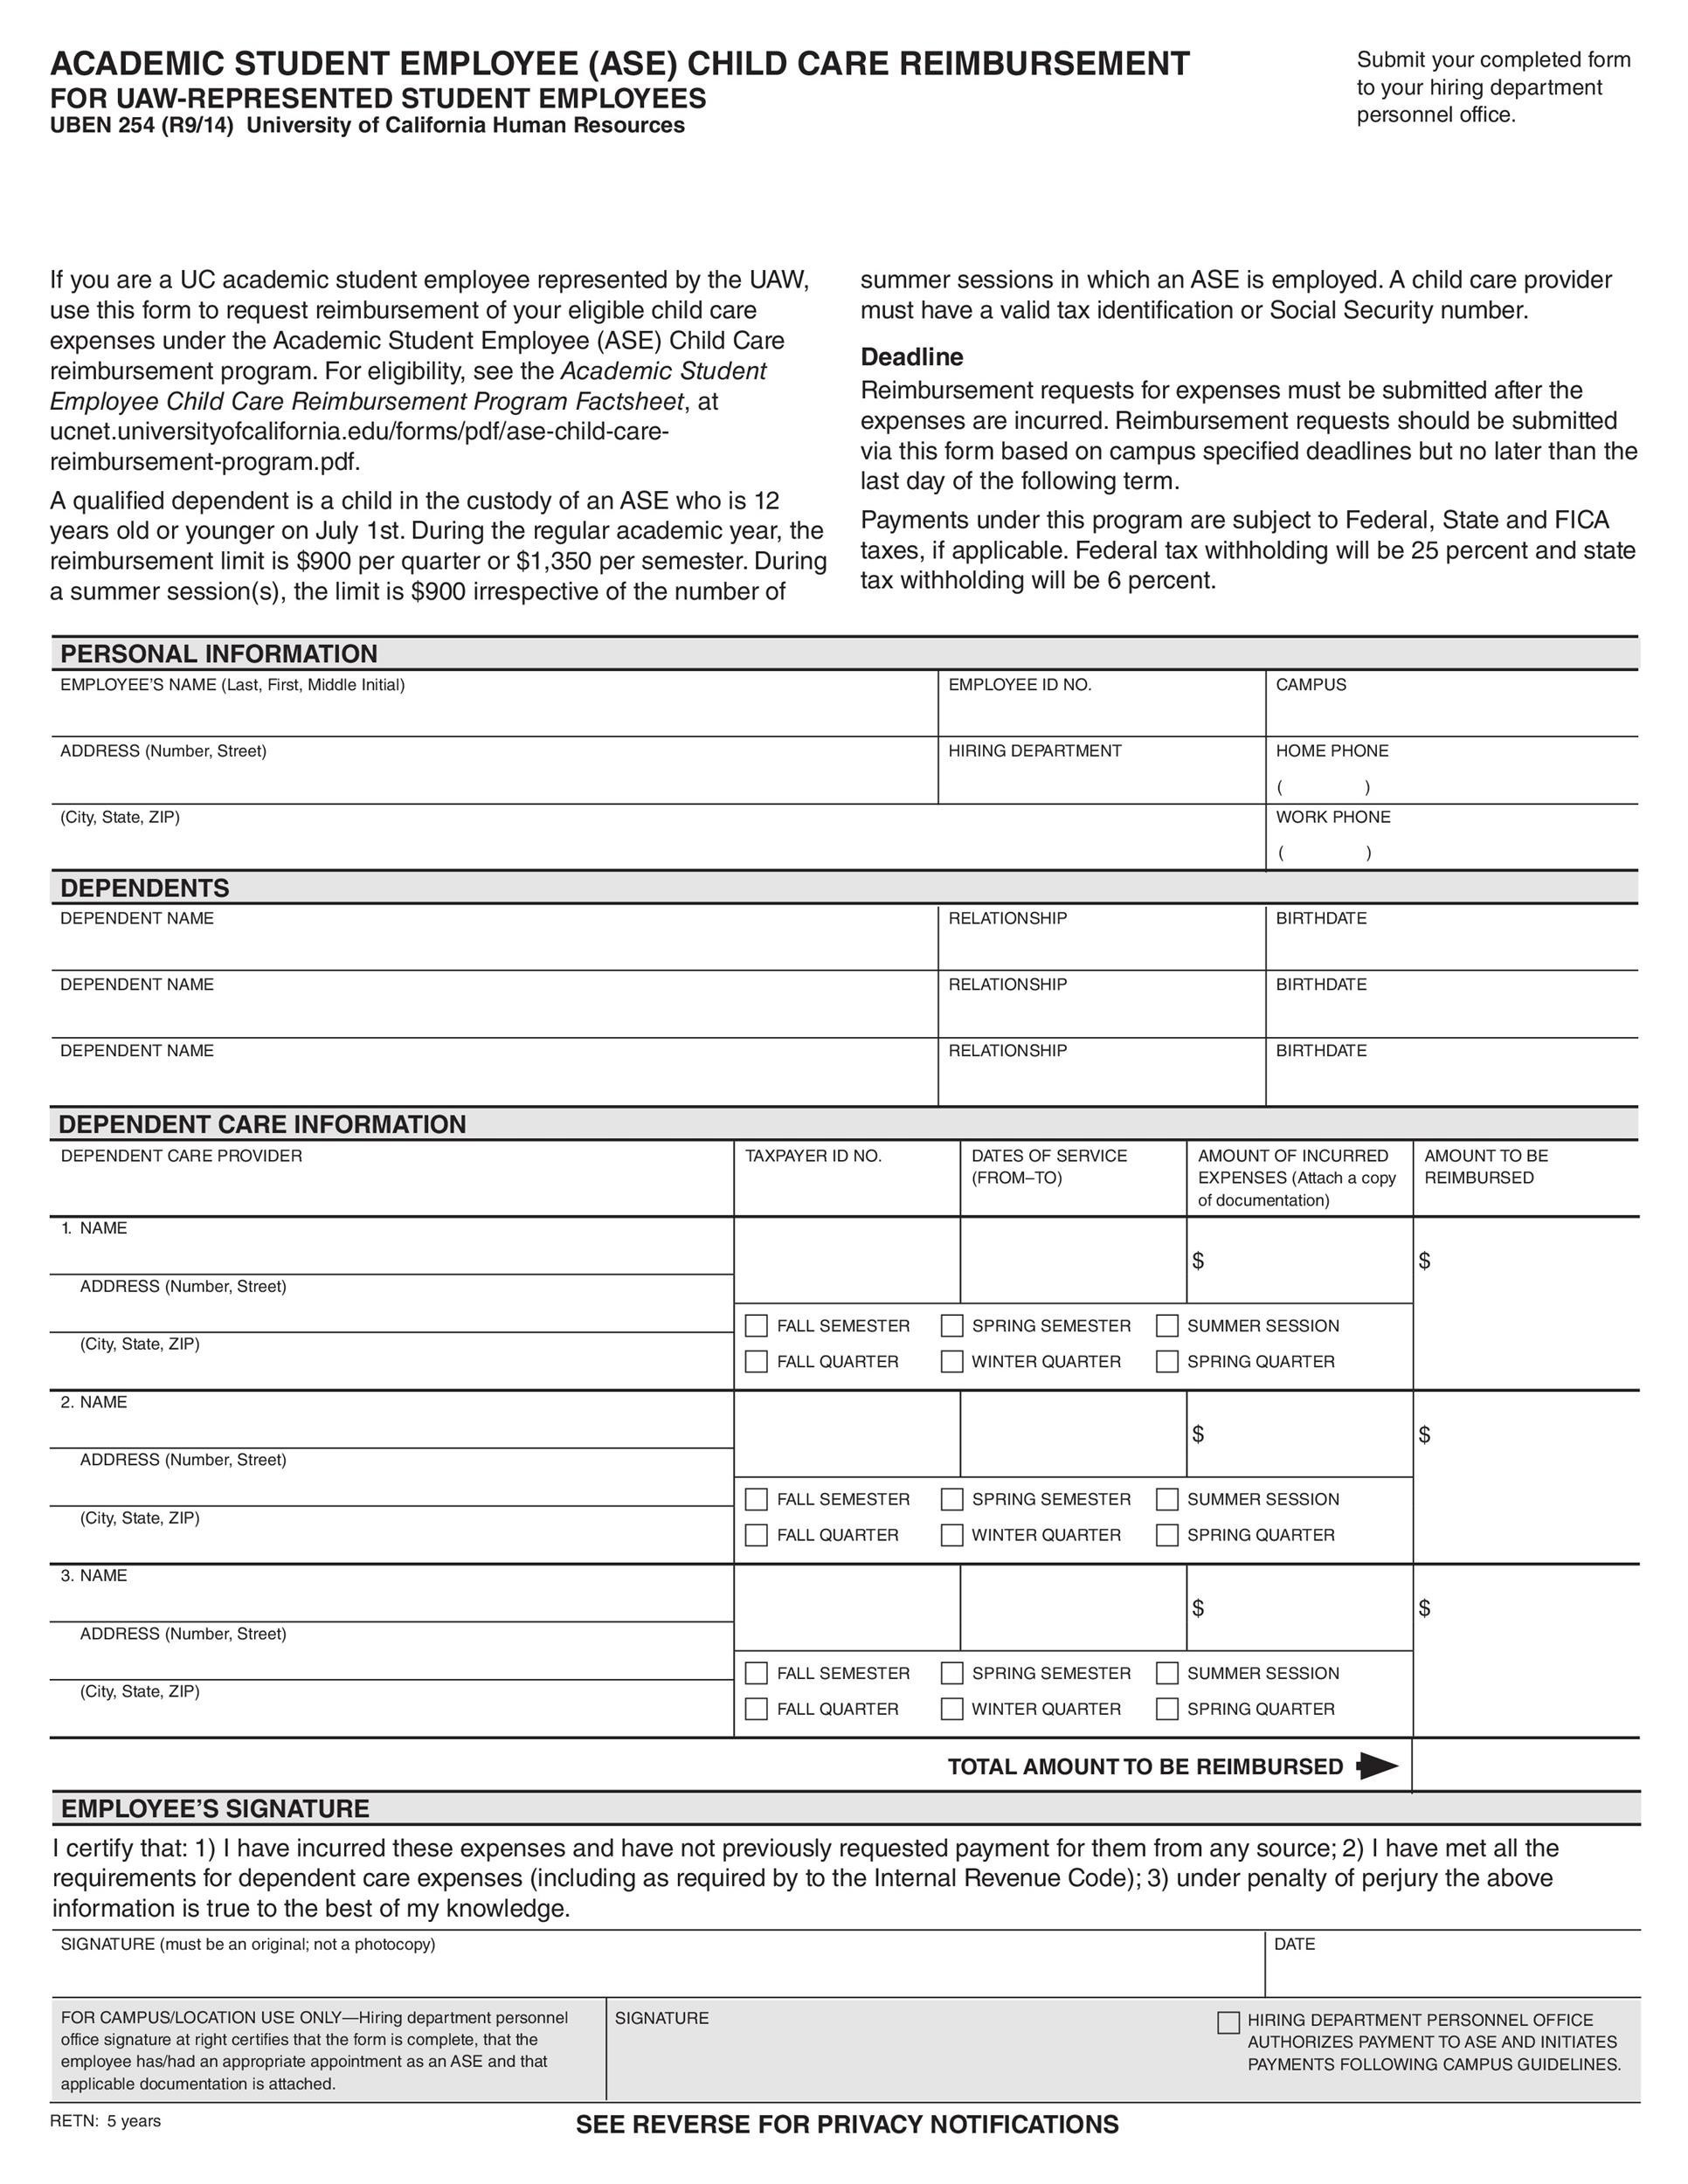 Free reimbursement form 20